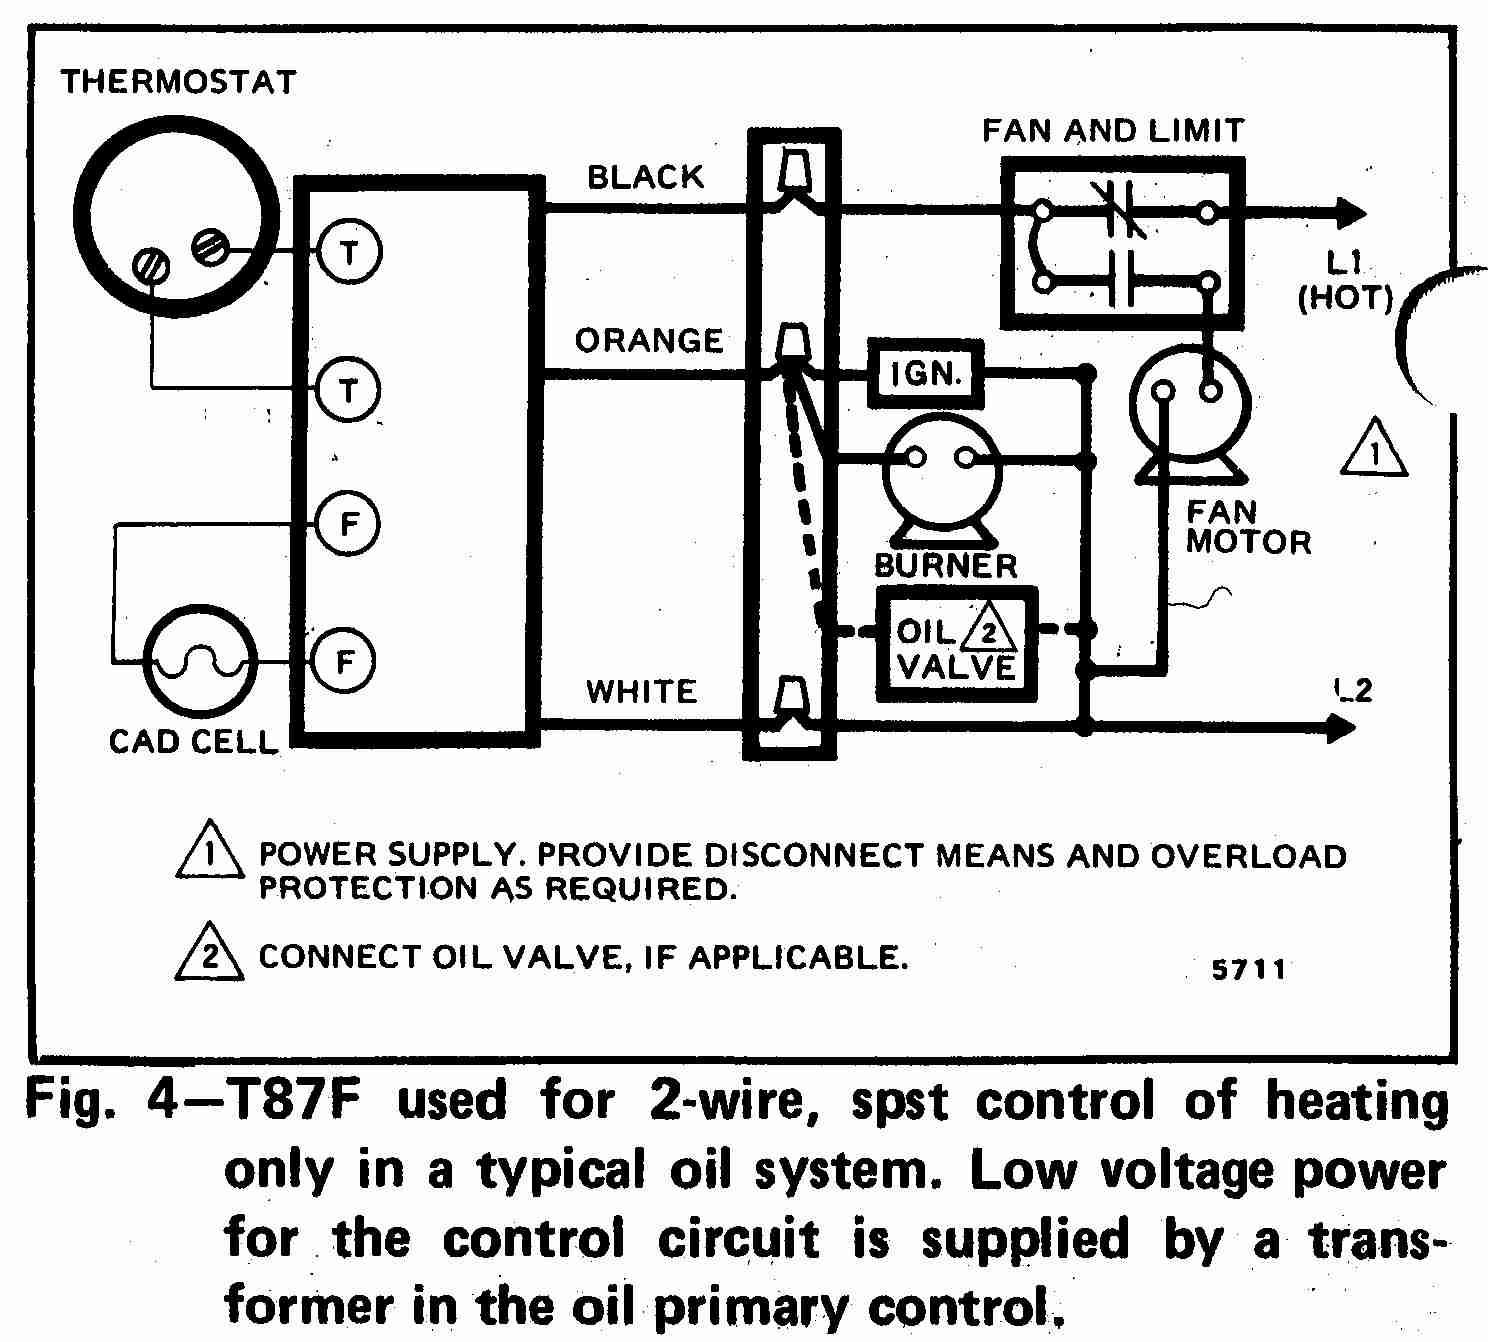 hight resolution of room thermostat wiring diagrams for hvac systems ac heater thermostat heater thermostat diagram